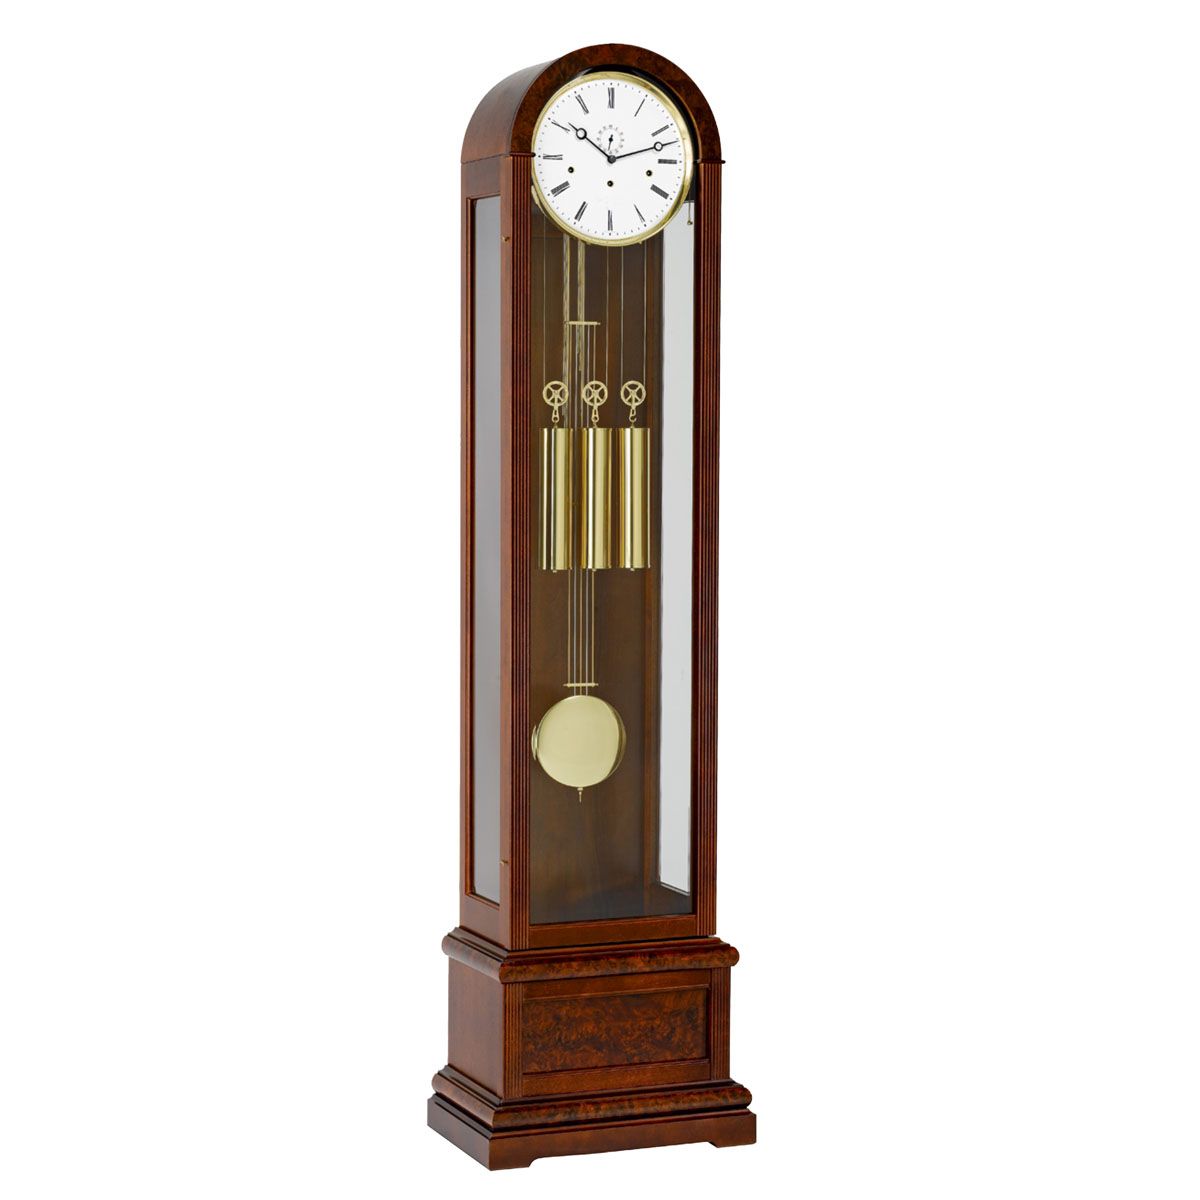 VANGUARD Grandfather Floor Clock